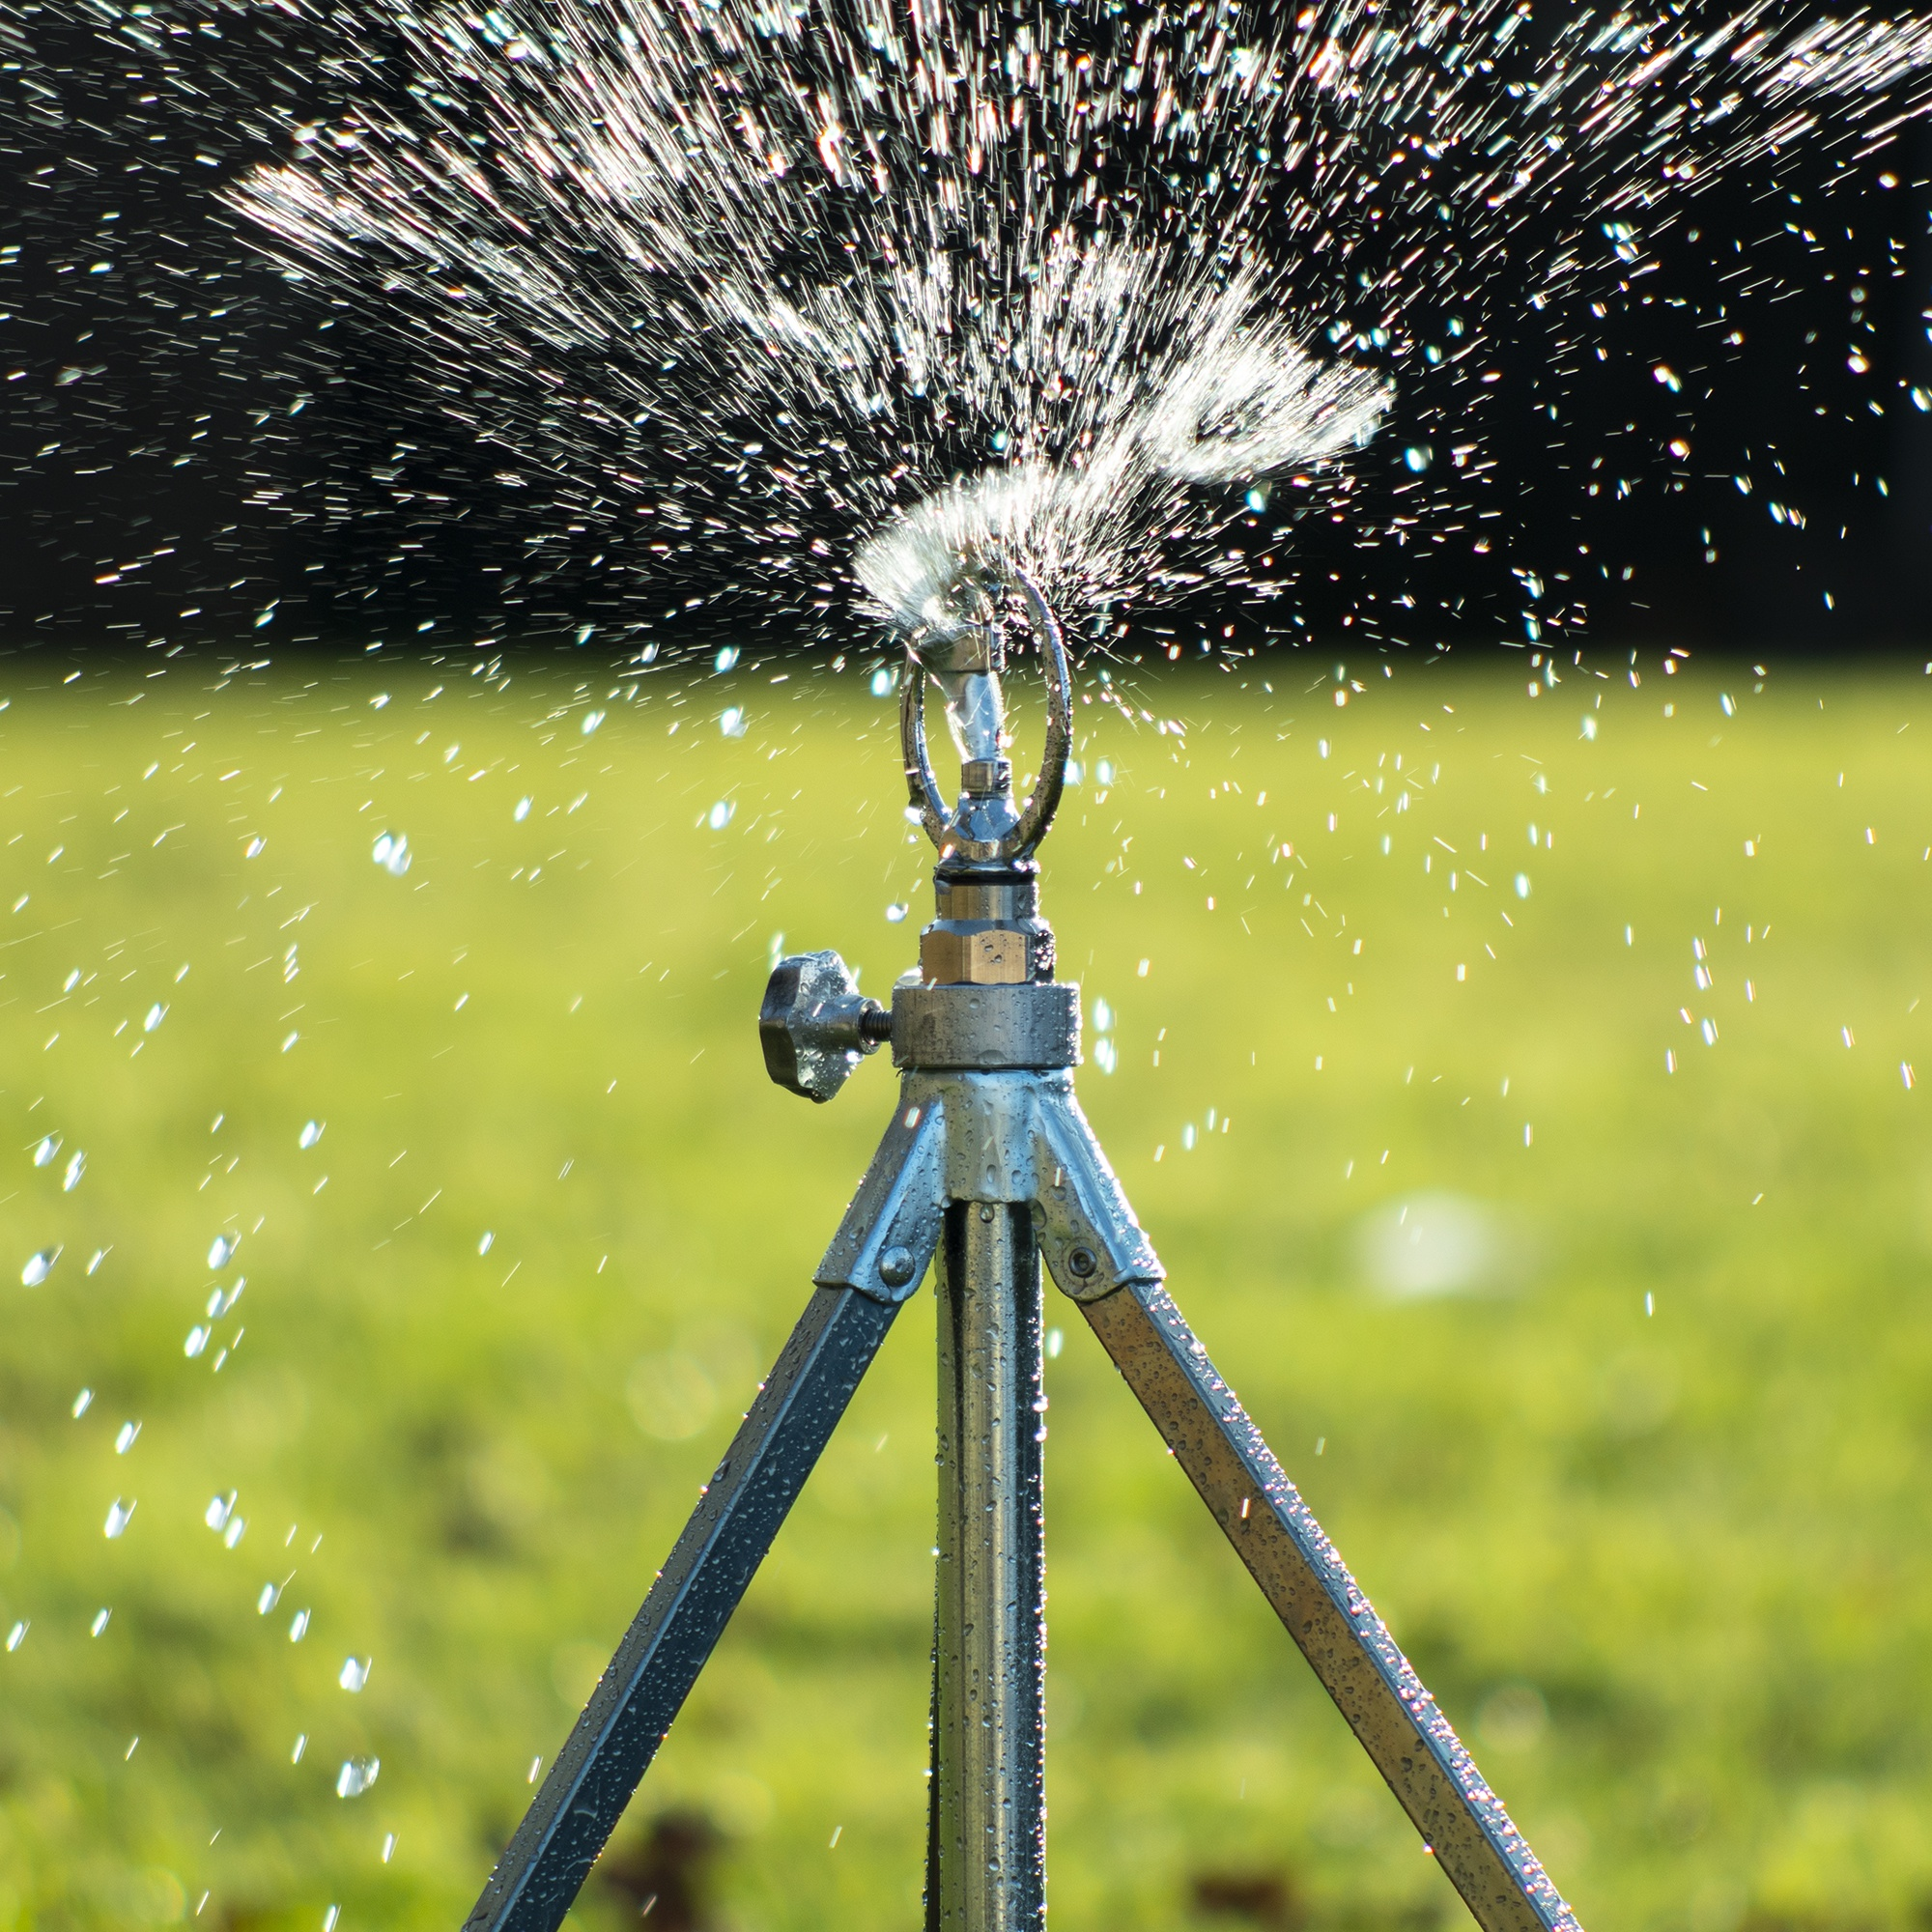 Tripod and Sled Mounted Sprinklers